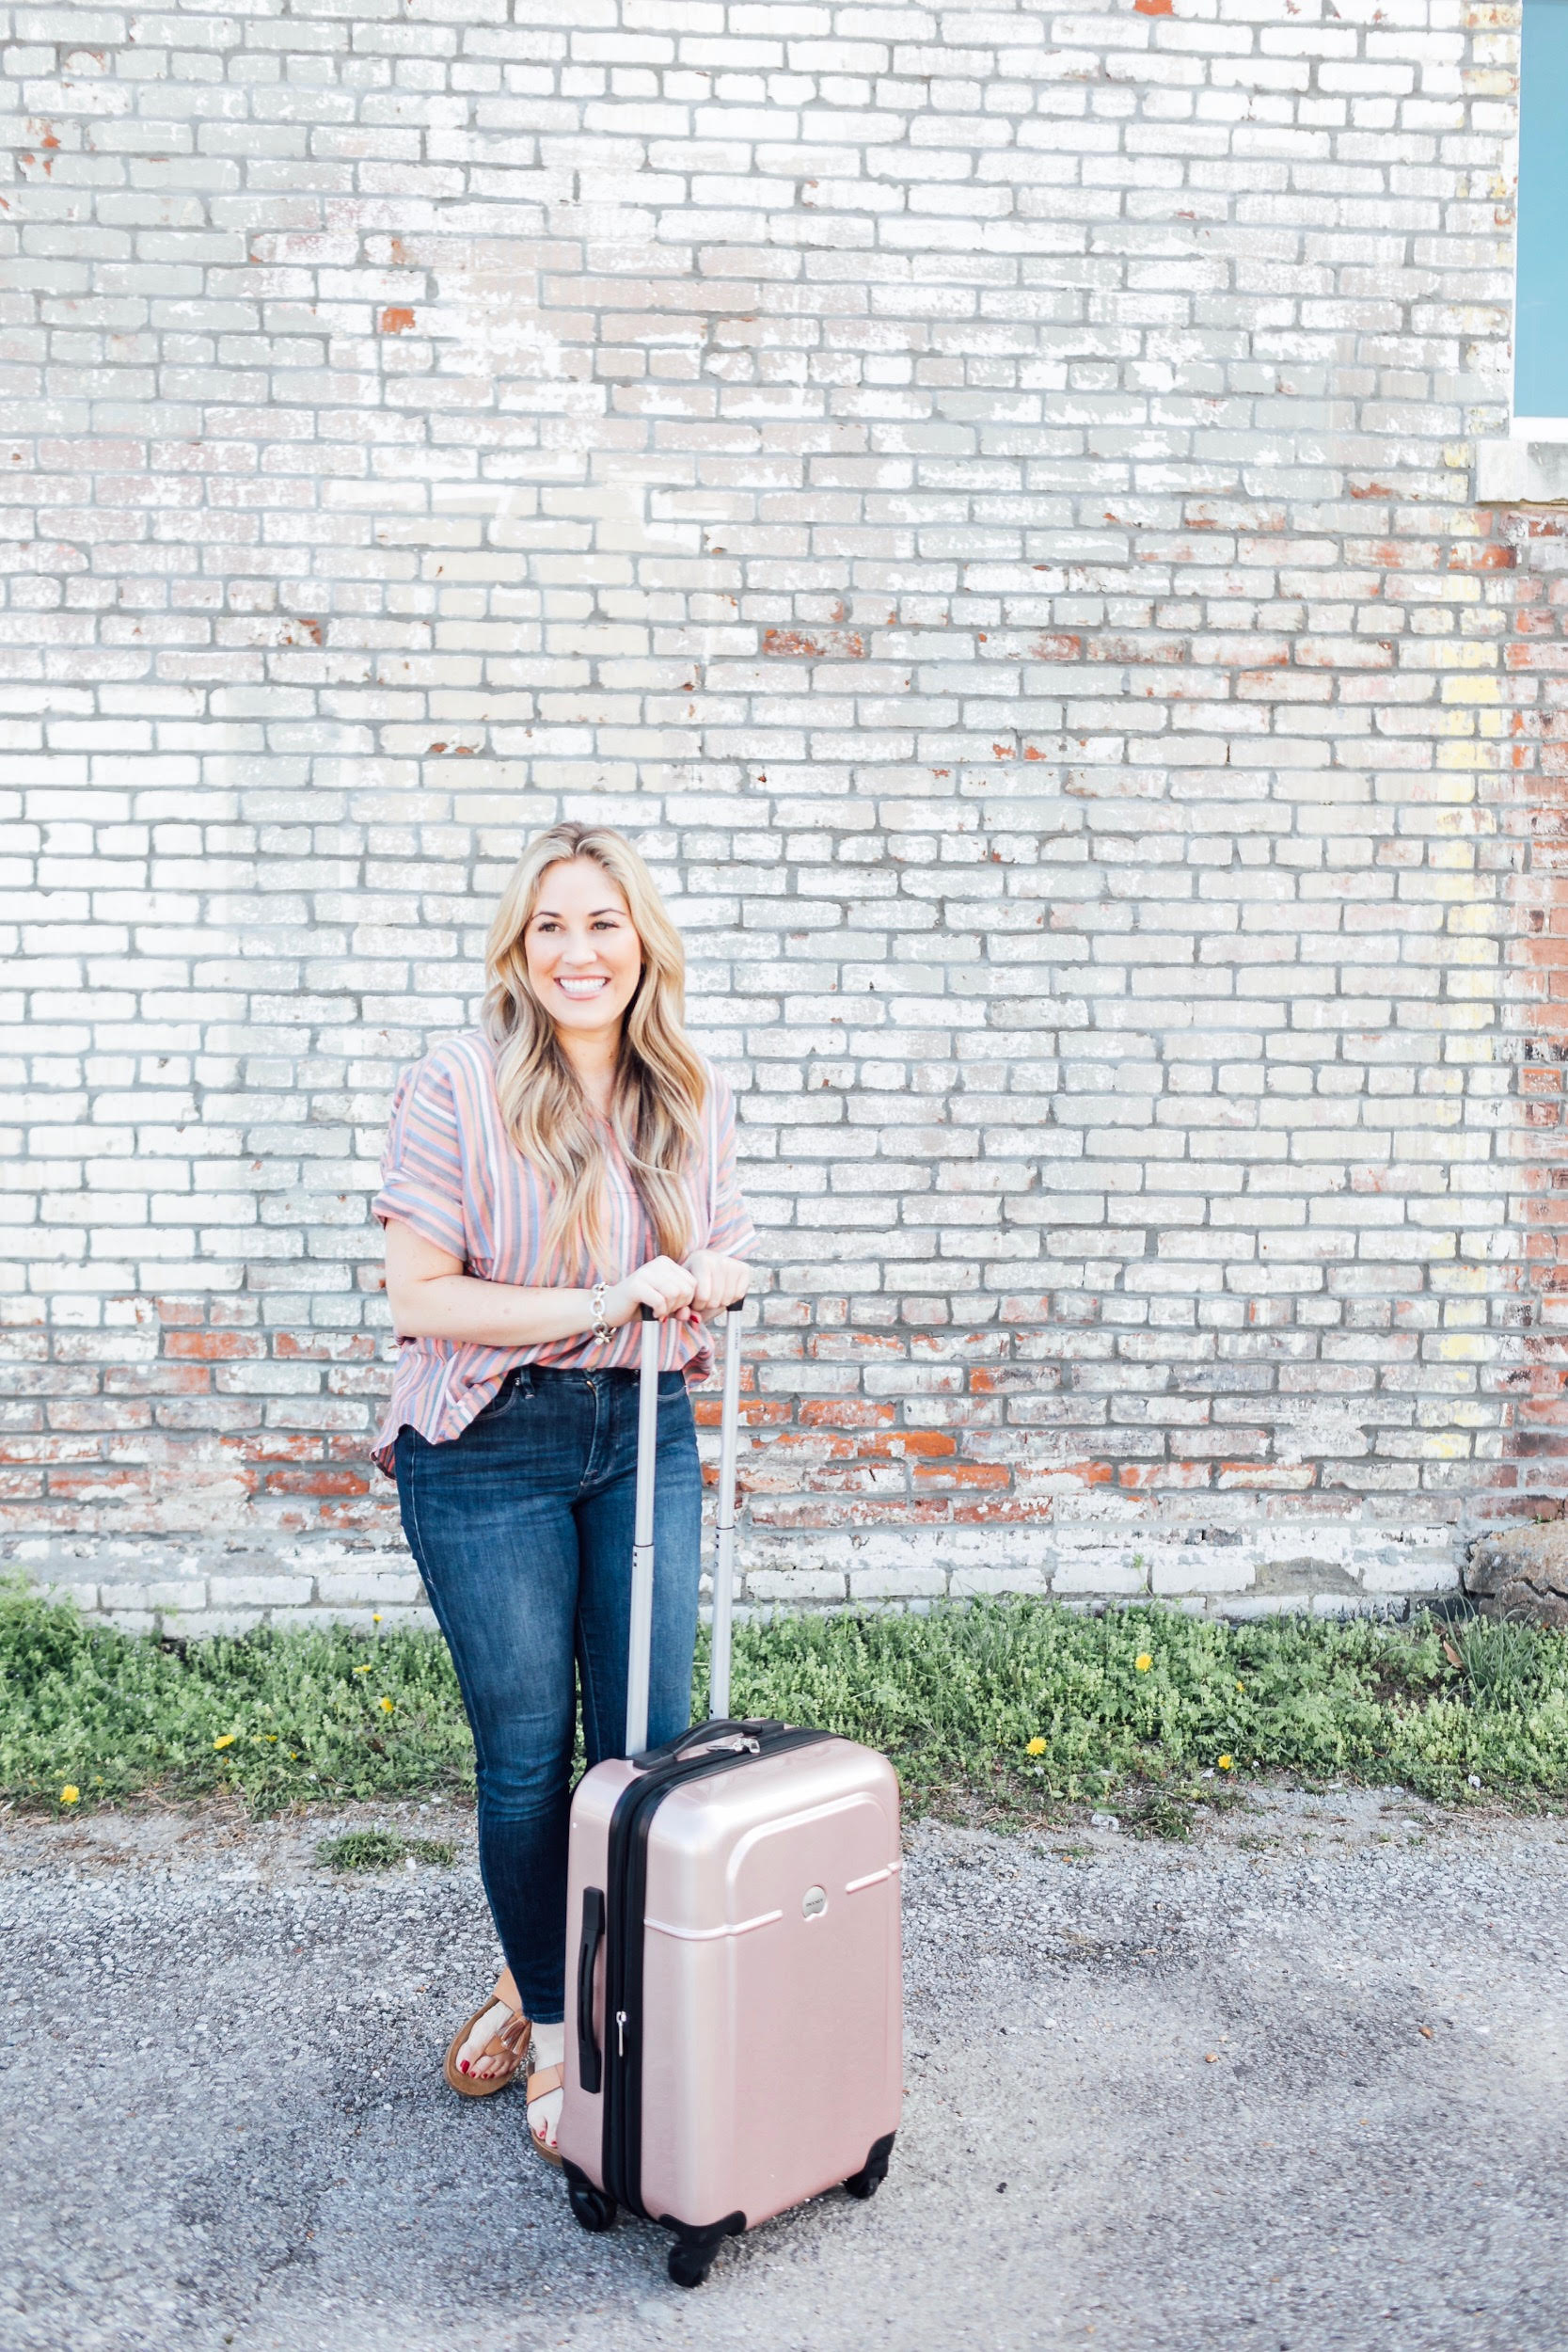 A Complete Spring Trip Packing List + Delsey Spinner Carry-On Suitcase & Trip to Paris Giveaway!!